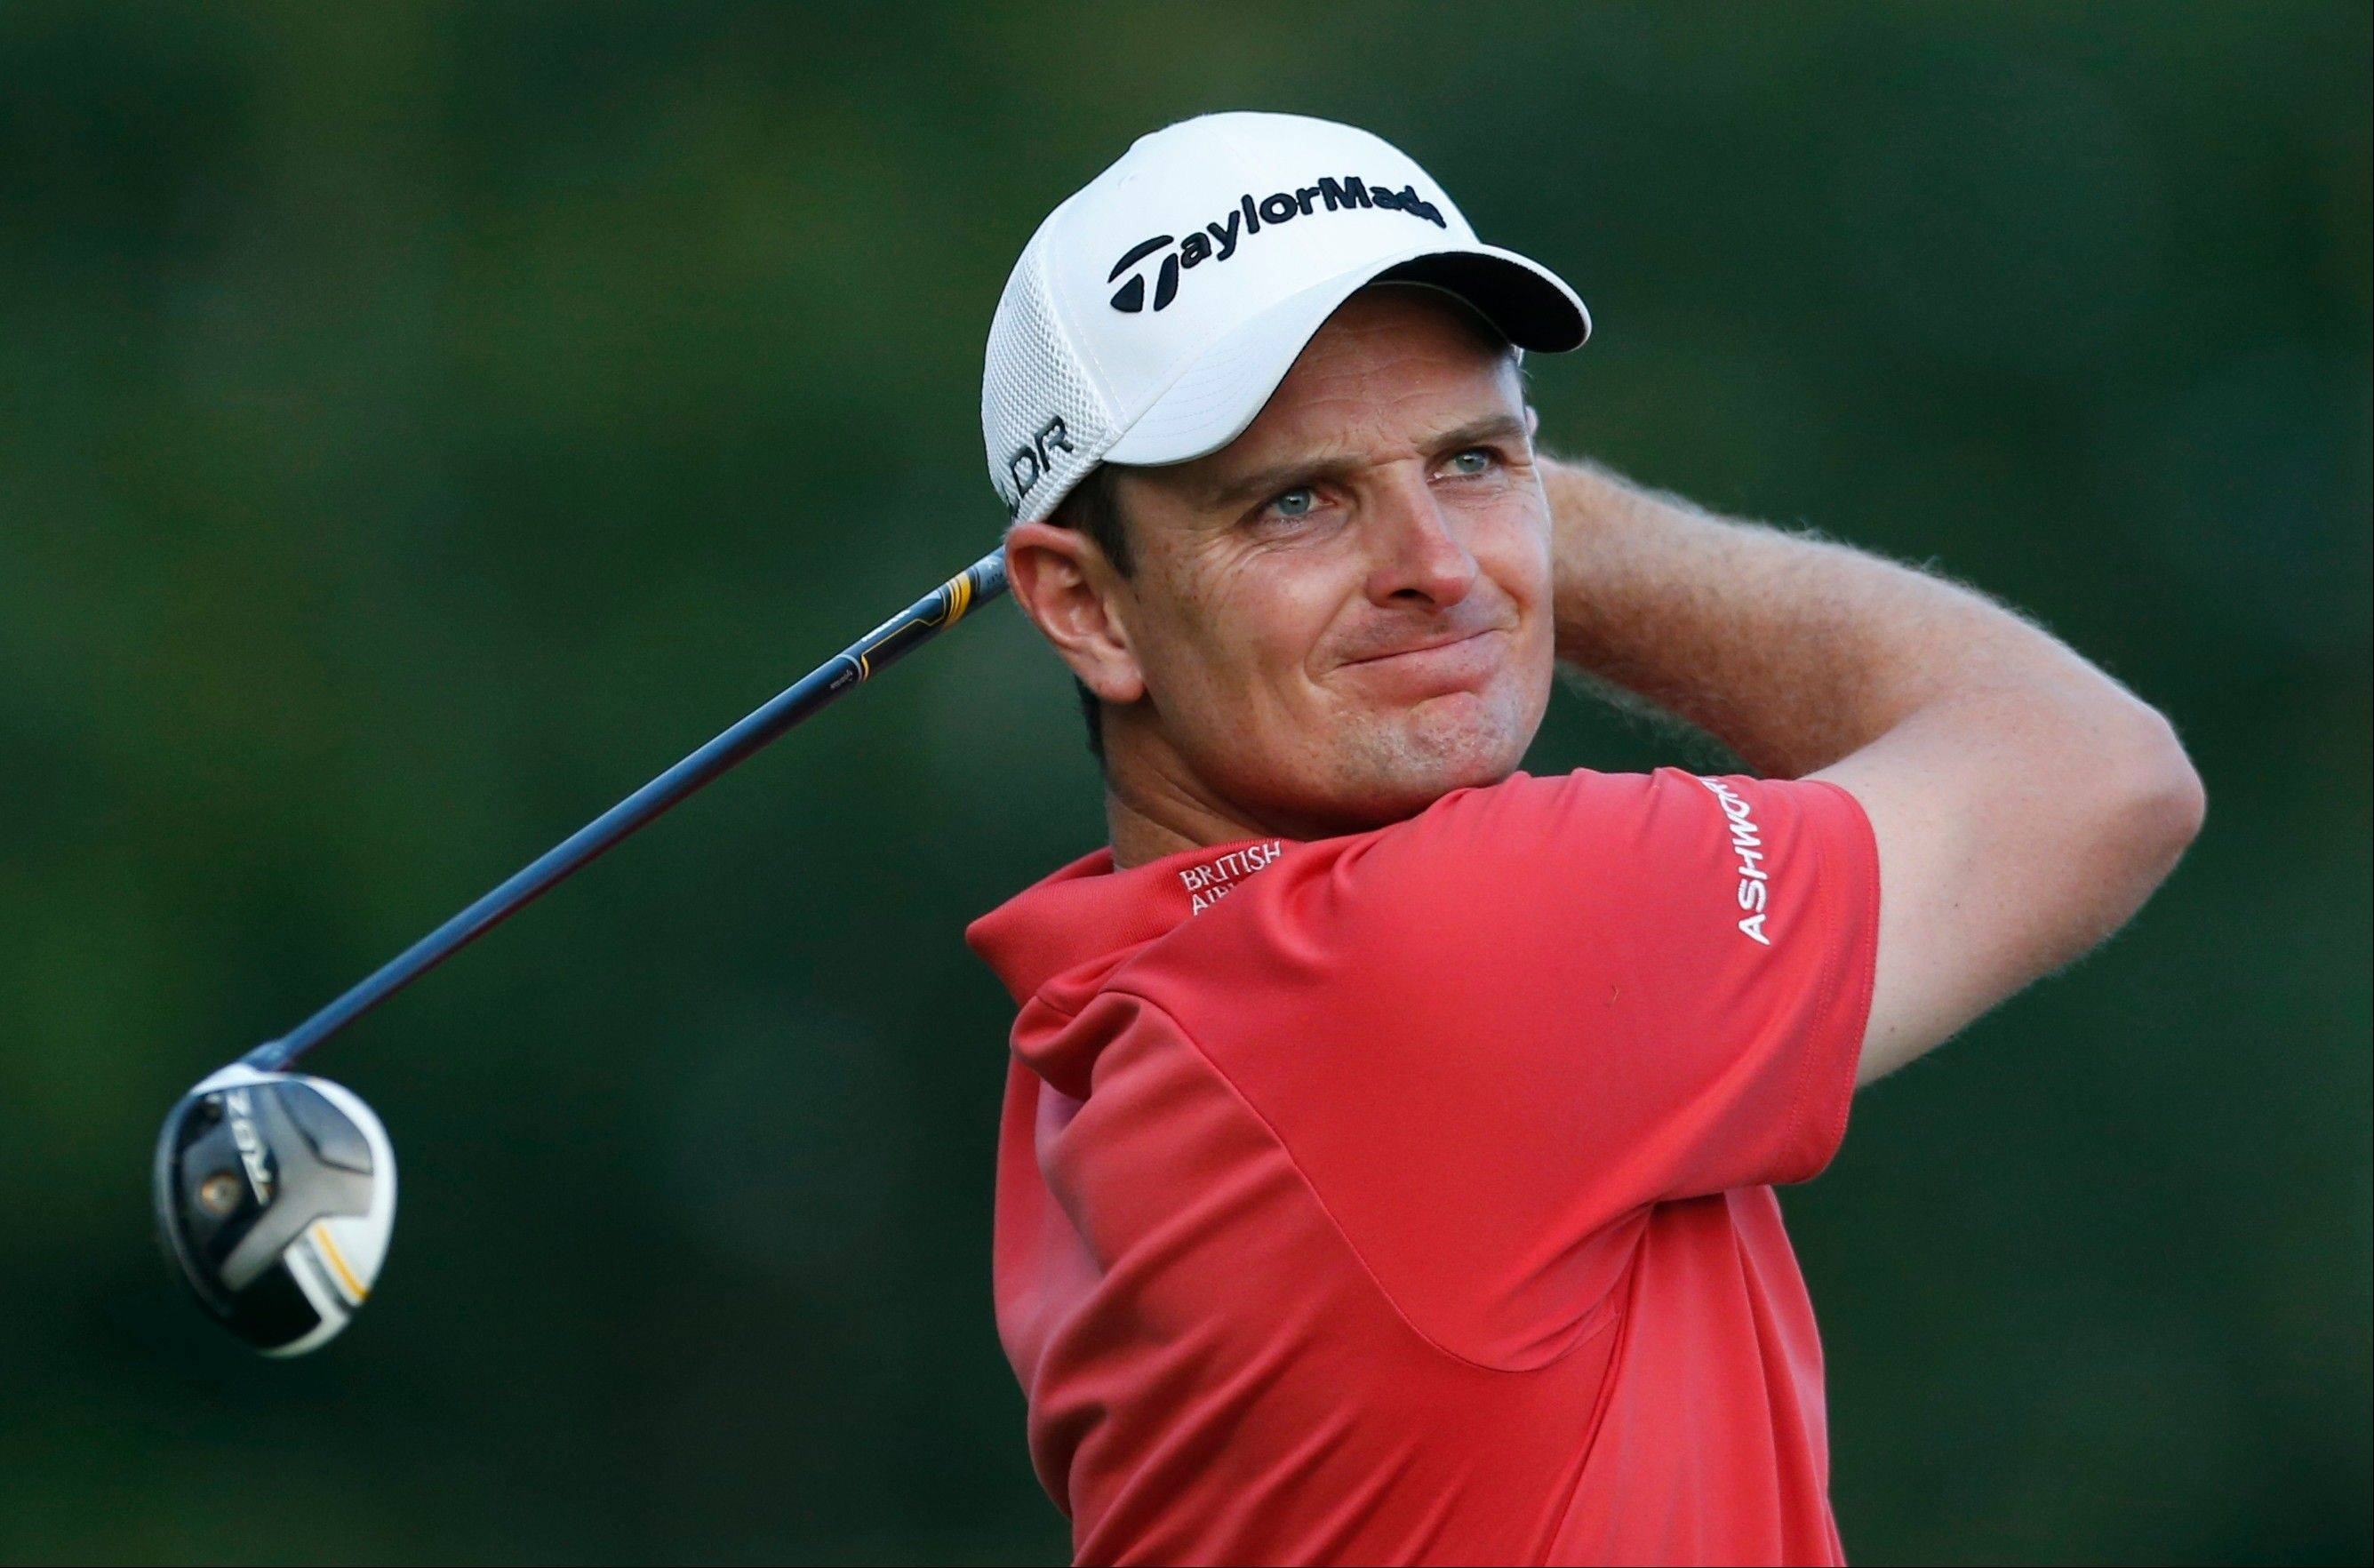 Justin Rose of England won the BMW Championship when it was held in 2011 at Cog Hill. He'll be among the 70 players vying for a chunk of the $8 million purse at this week's tournament.